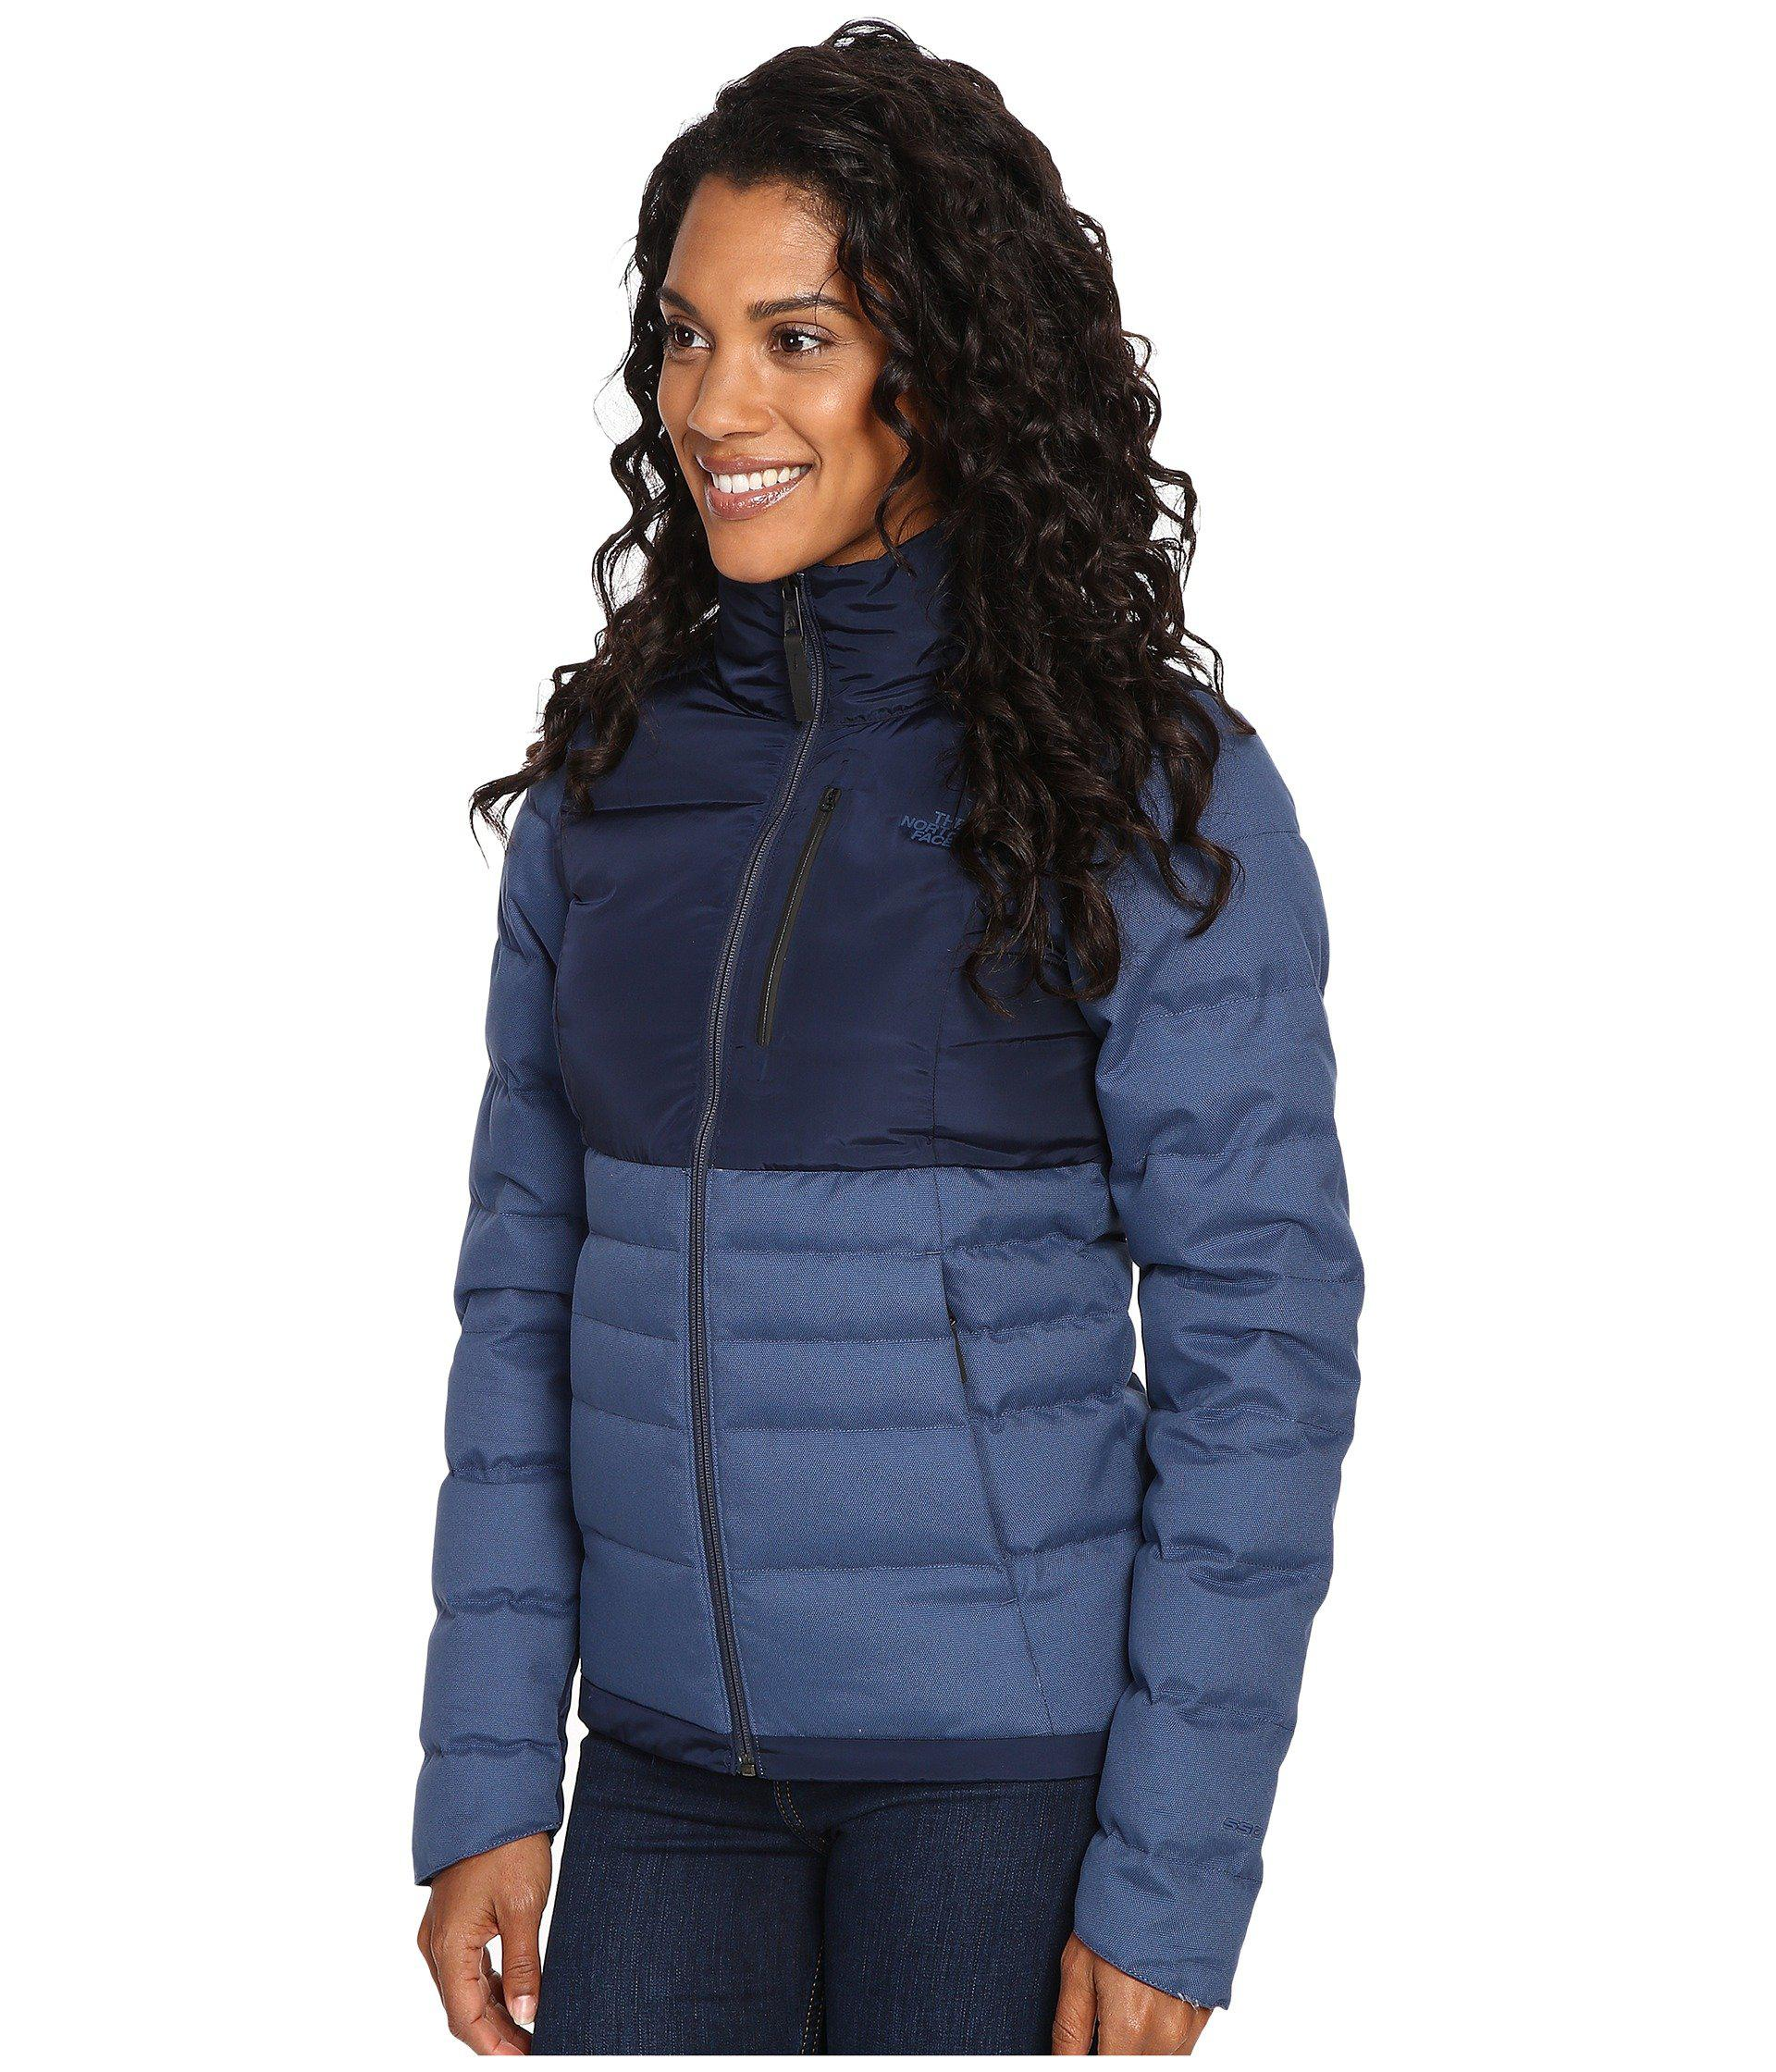 a990ad5ee4a5 The North Face - Blue Denali Down Jacket - Lyst. View fullscreen